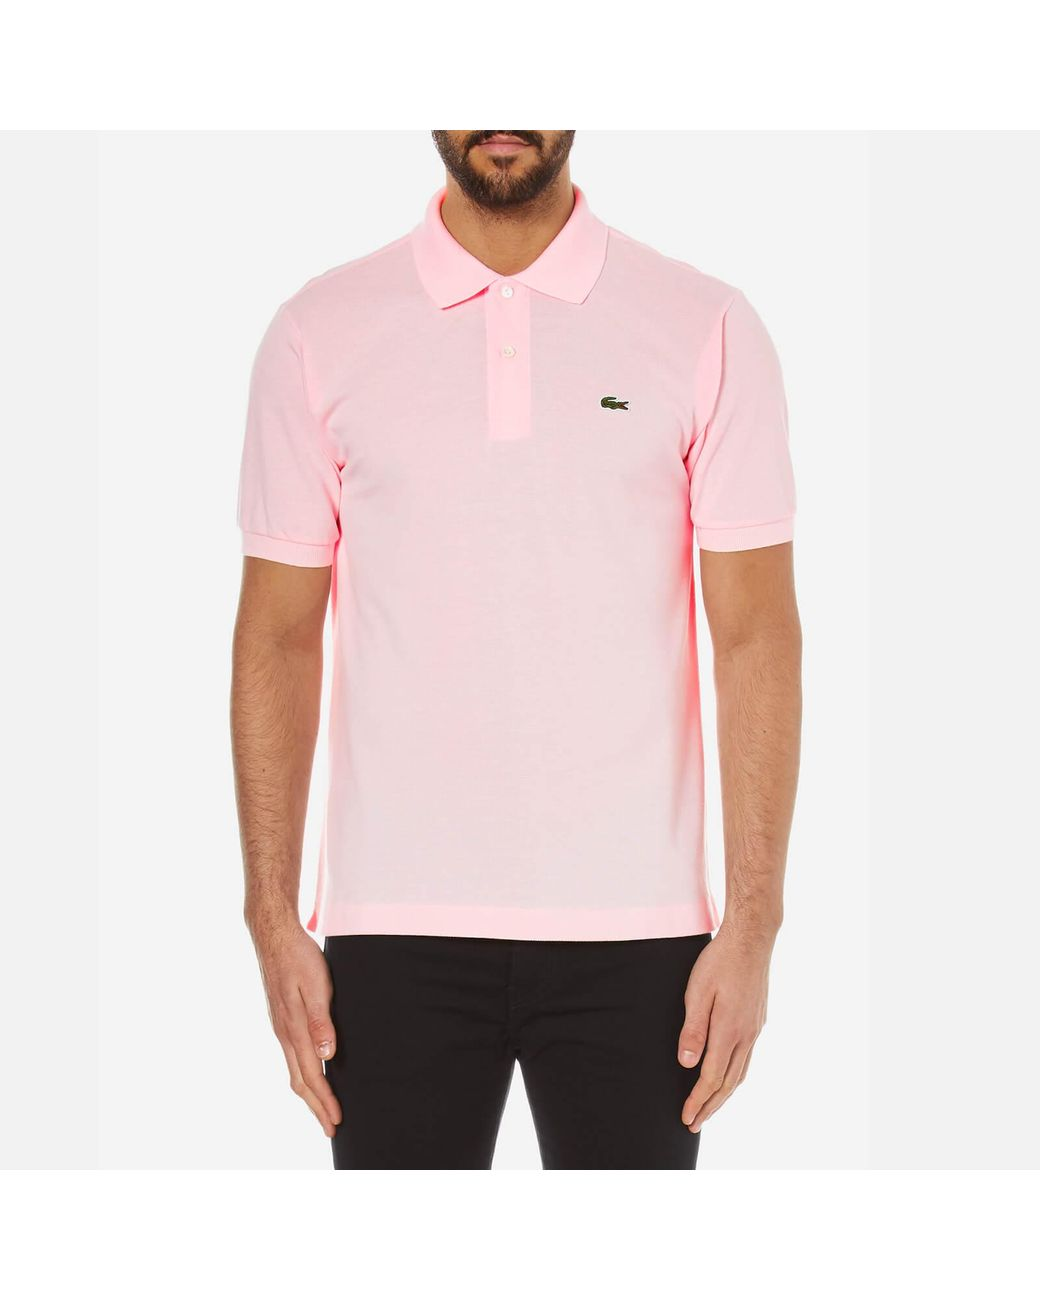 3ff743555c6 Lacoste Polo Shirt in Pink for Men - Save 15% - Lyst